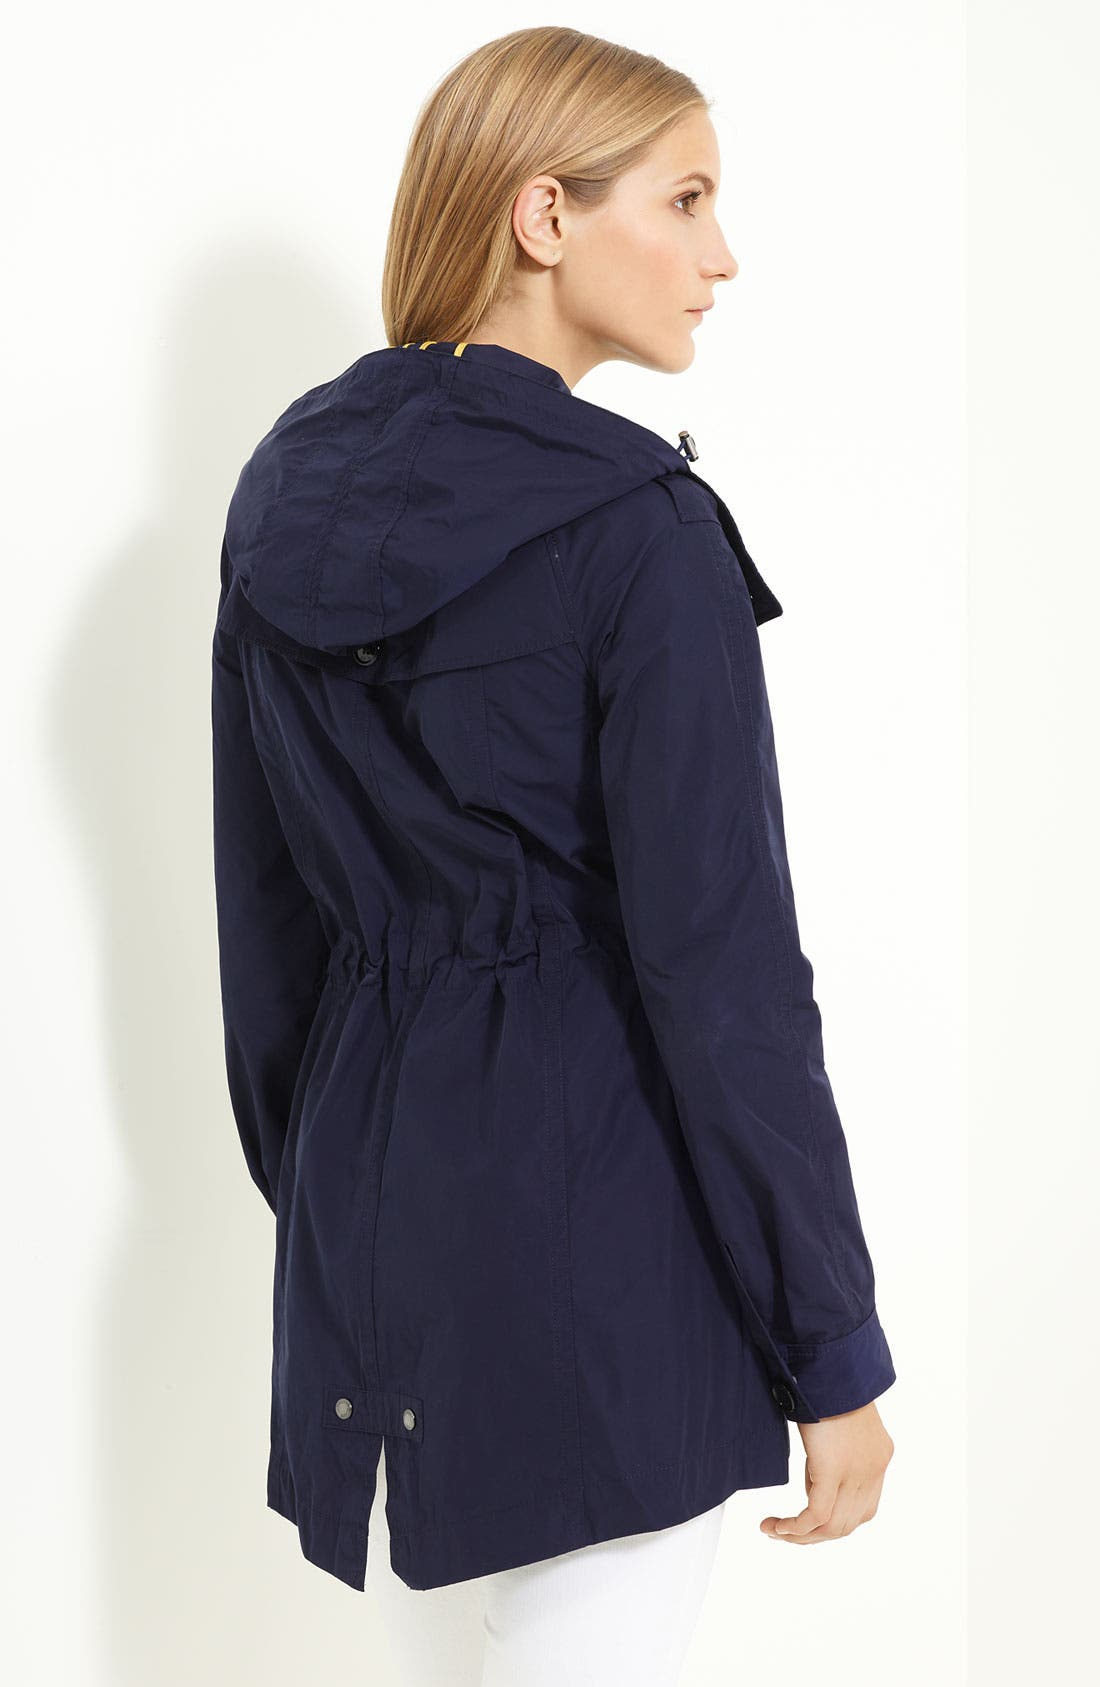 Anorak with Detachable Hood,                             Alternate thumbnail 2, color,                             400